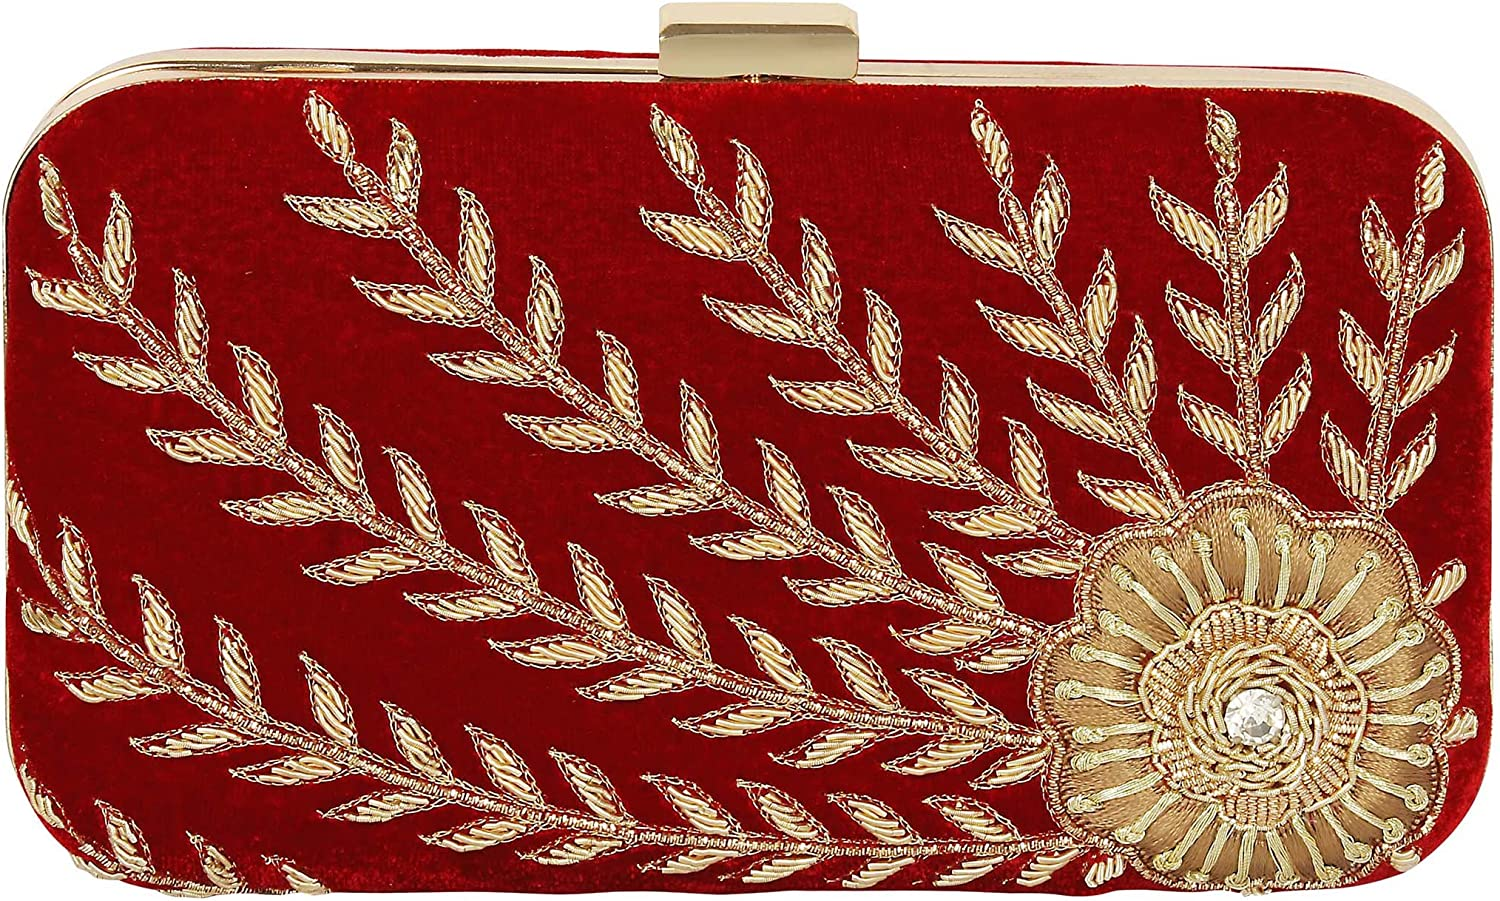 { Extra 10% Discount } Purse Collection Red Handmade Bridal Clutch With Embroidery Work Purses For Women's